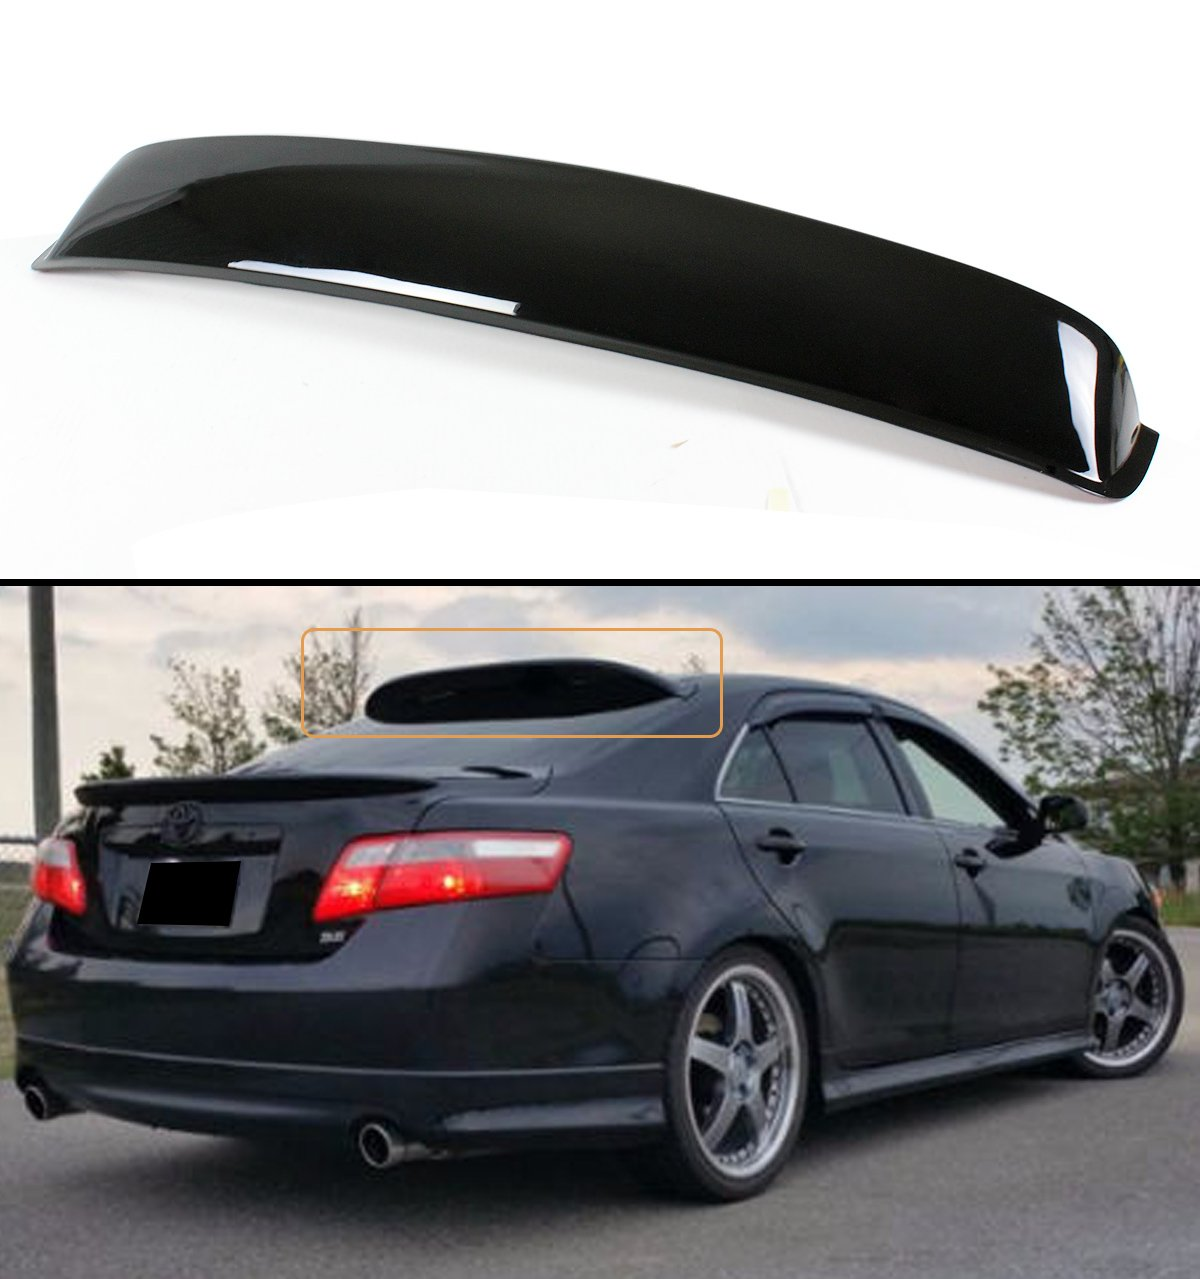 2008 Front Bumper Lip Fits 2007-2009 Toyota Camry OEM Factory SE Style Black PU Front Lip Finisher Under Chin Spoiler Add On by IKON MOTORSPORTS